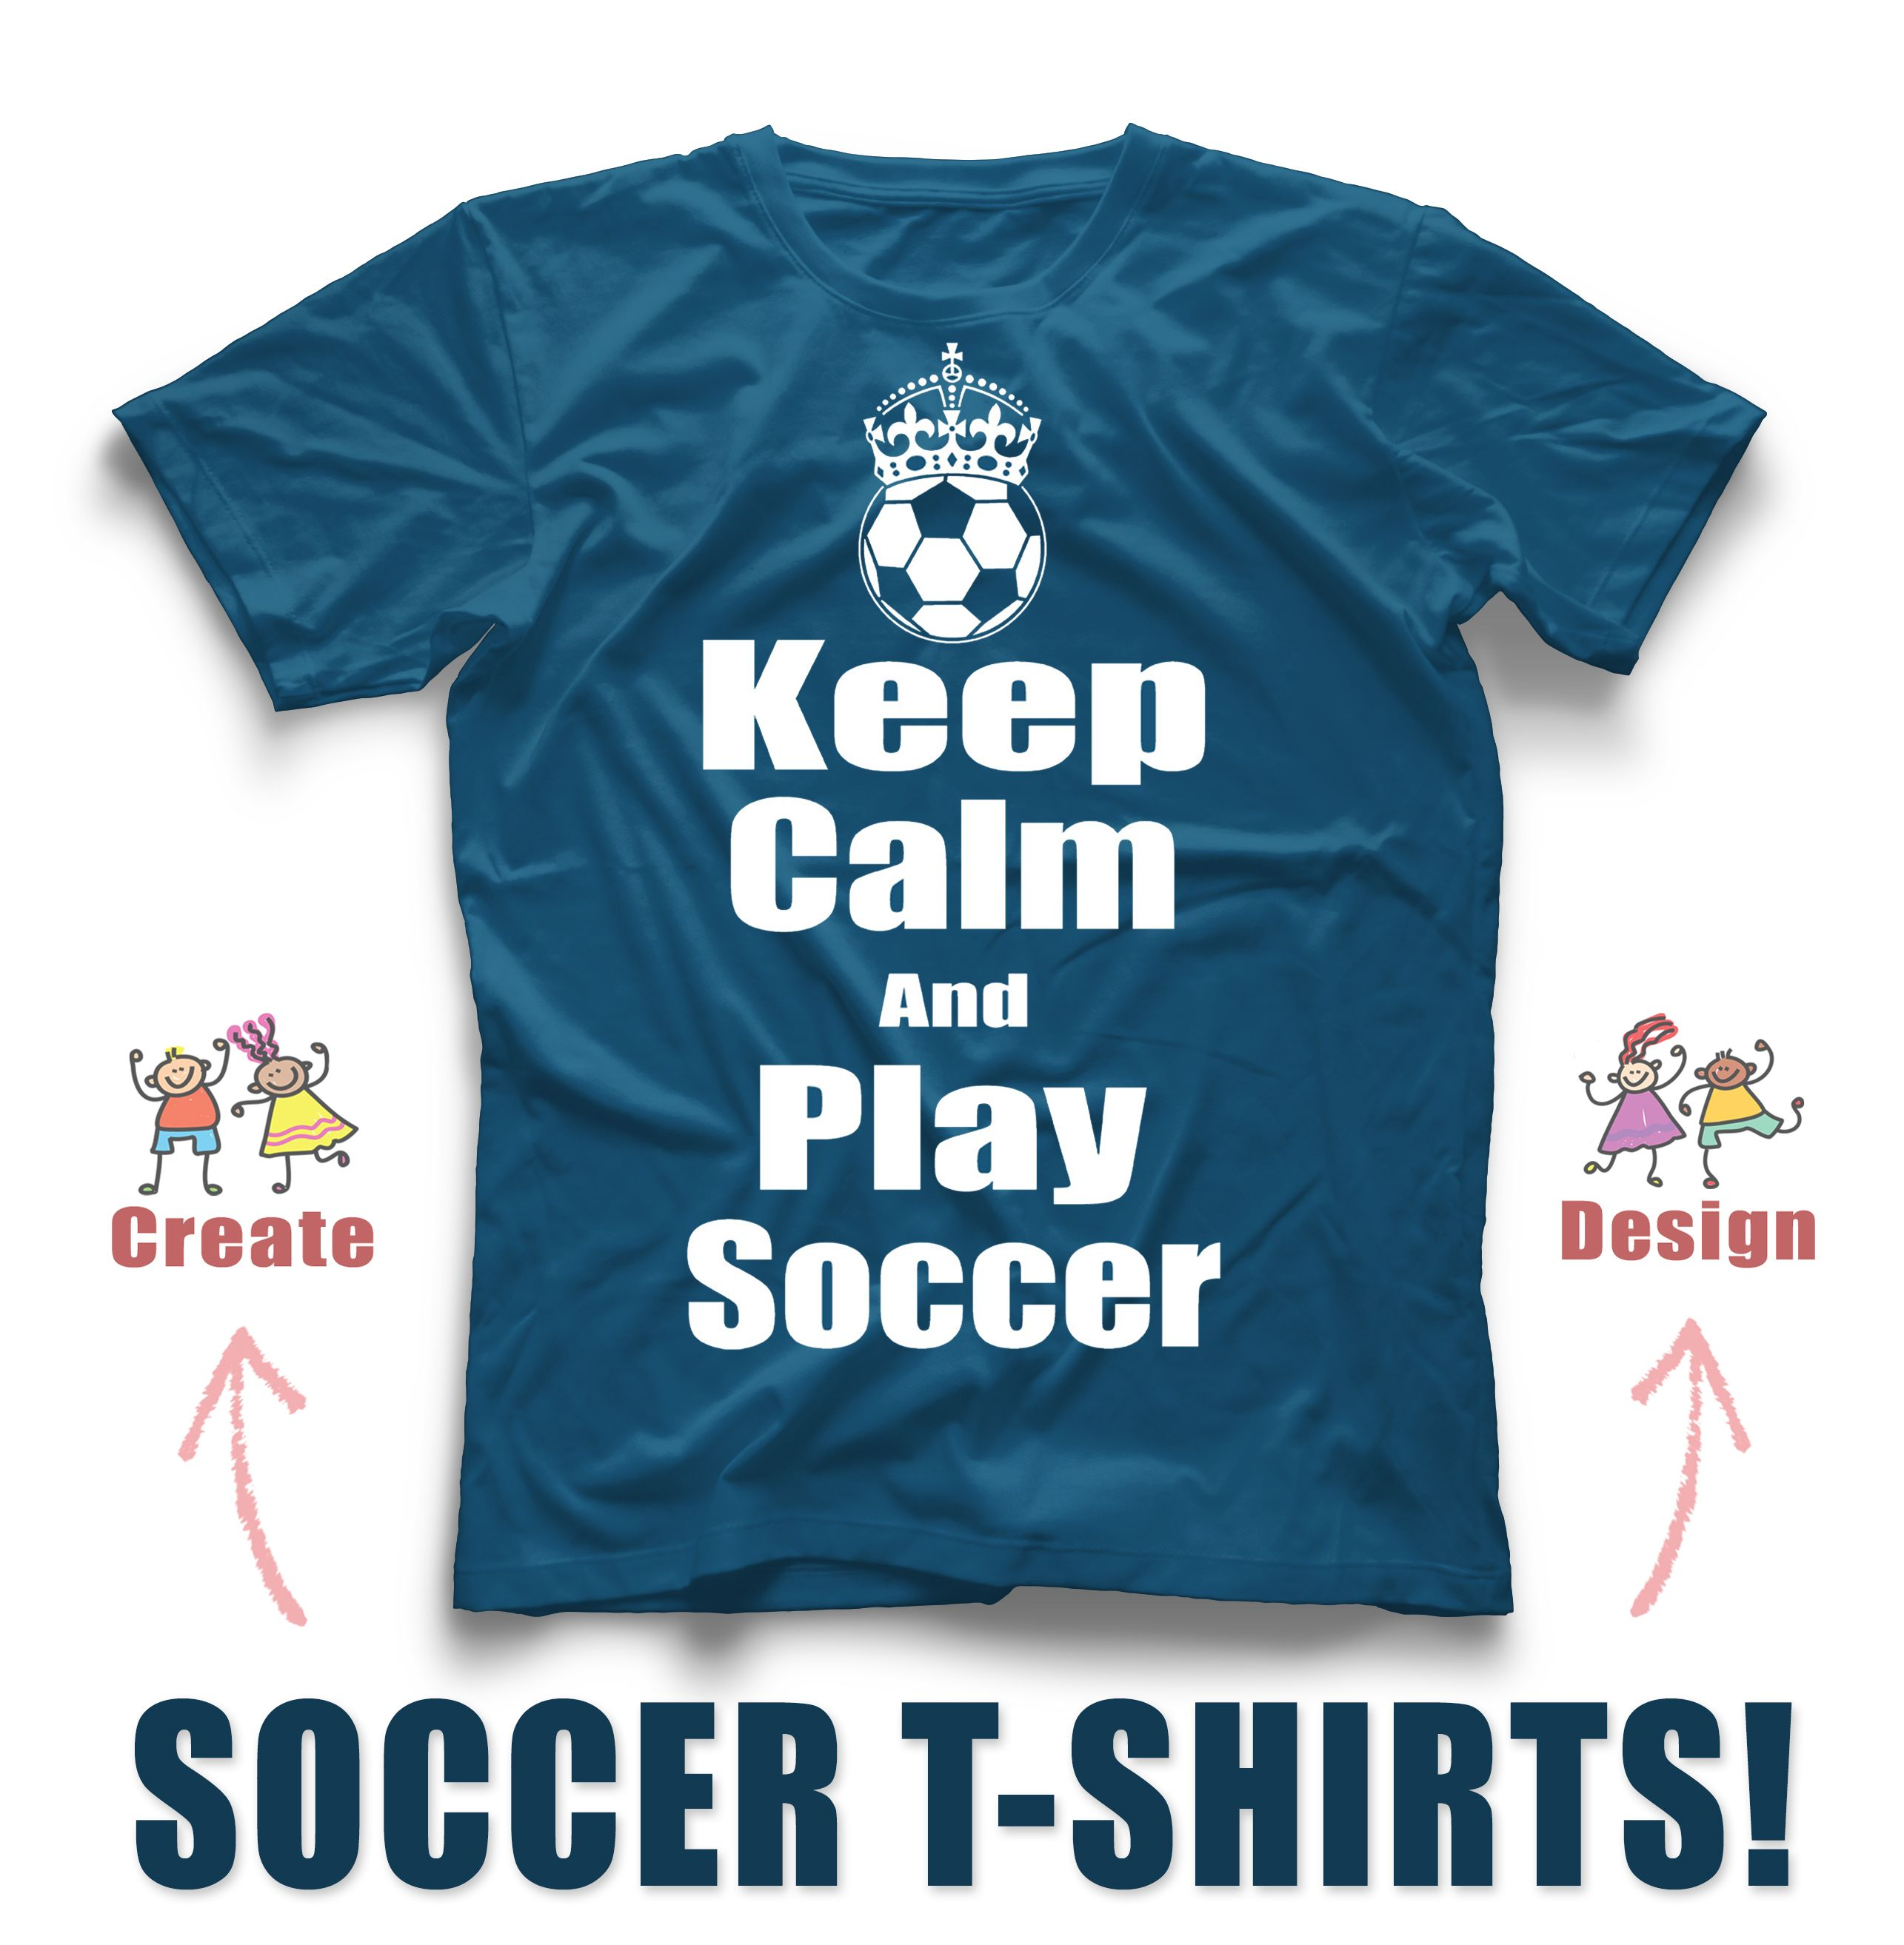 soccer custom t shirt design ideas keep calm and play soccer create your - Soccer T Shirt Design Ideas